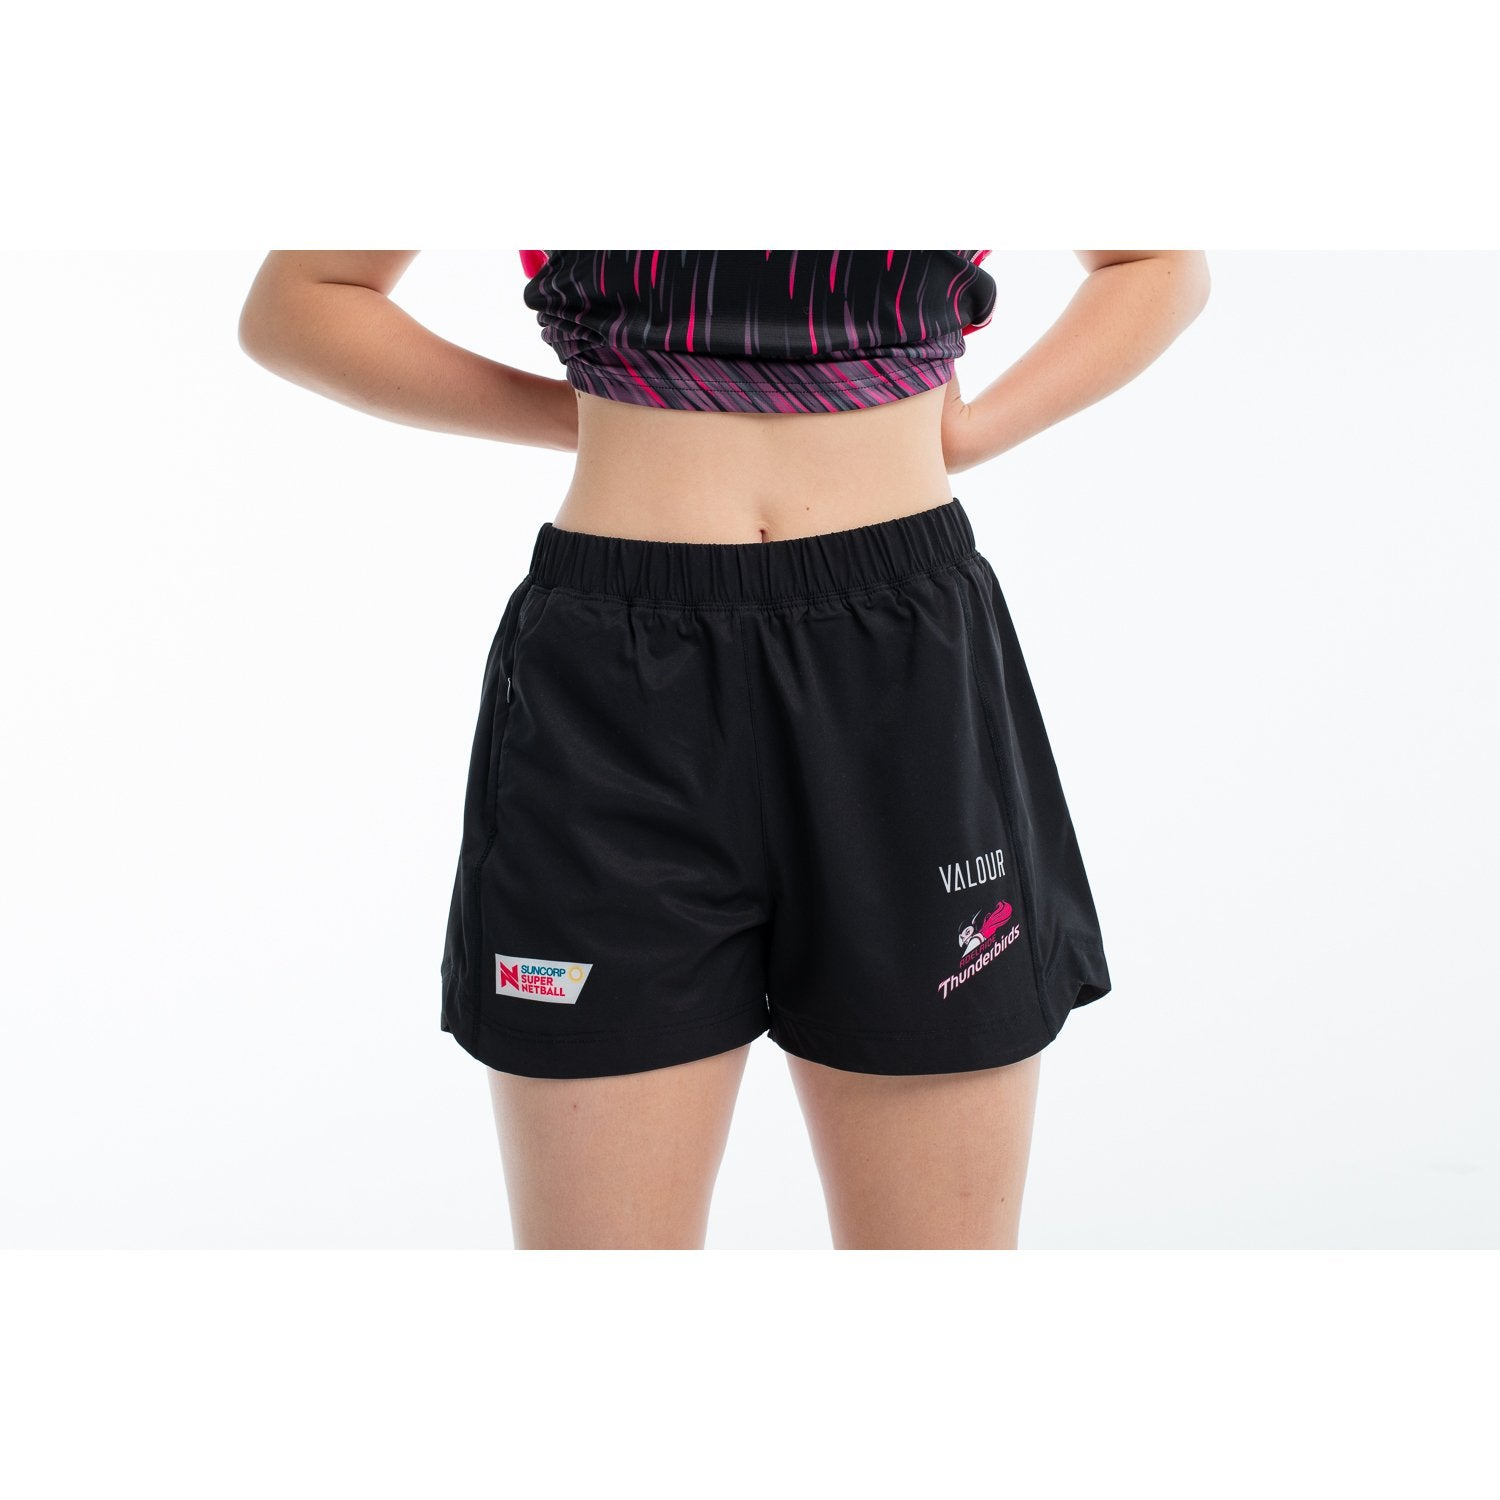 Thunderbirds Replica Training Shorts